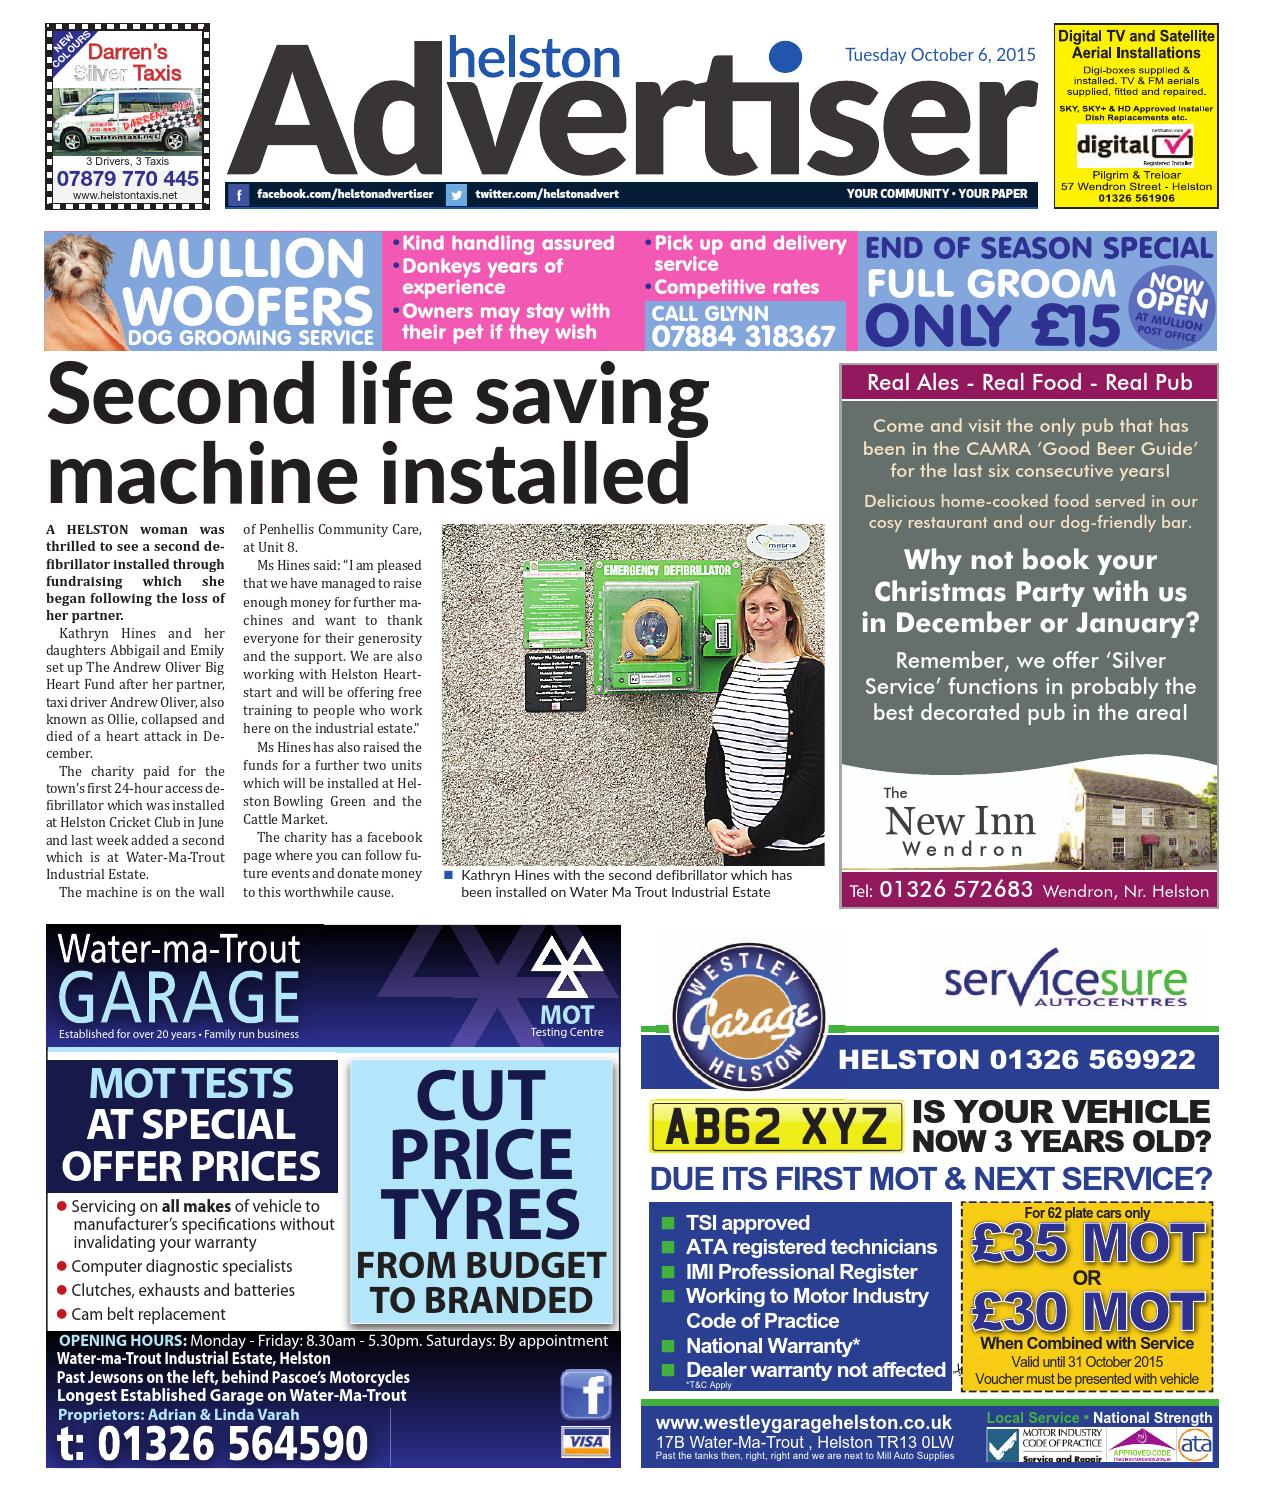 Helston Advertiser - October 6th 2015